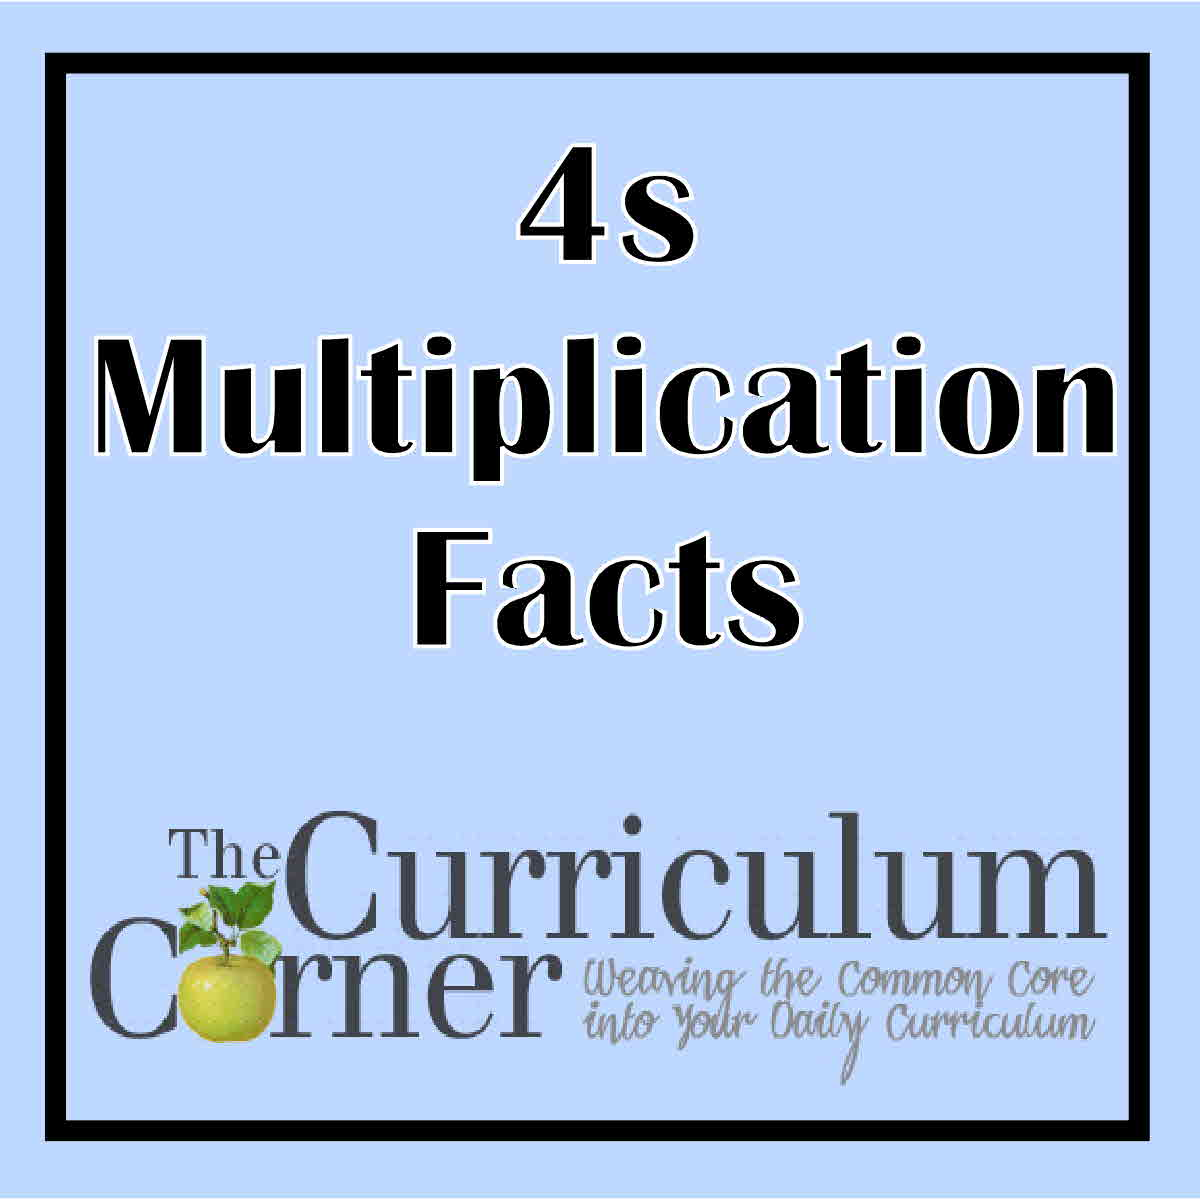 4s Multiplication Facts